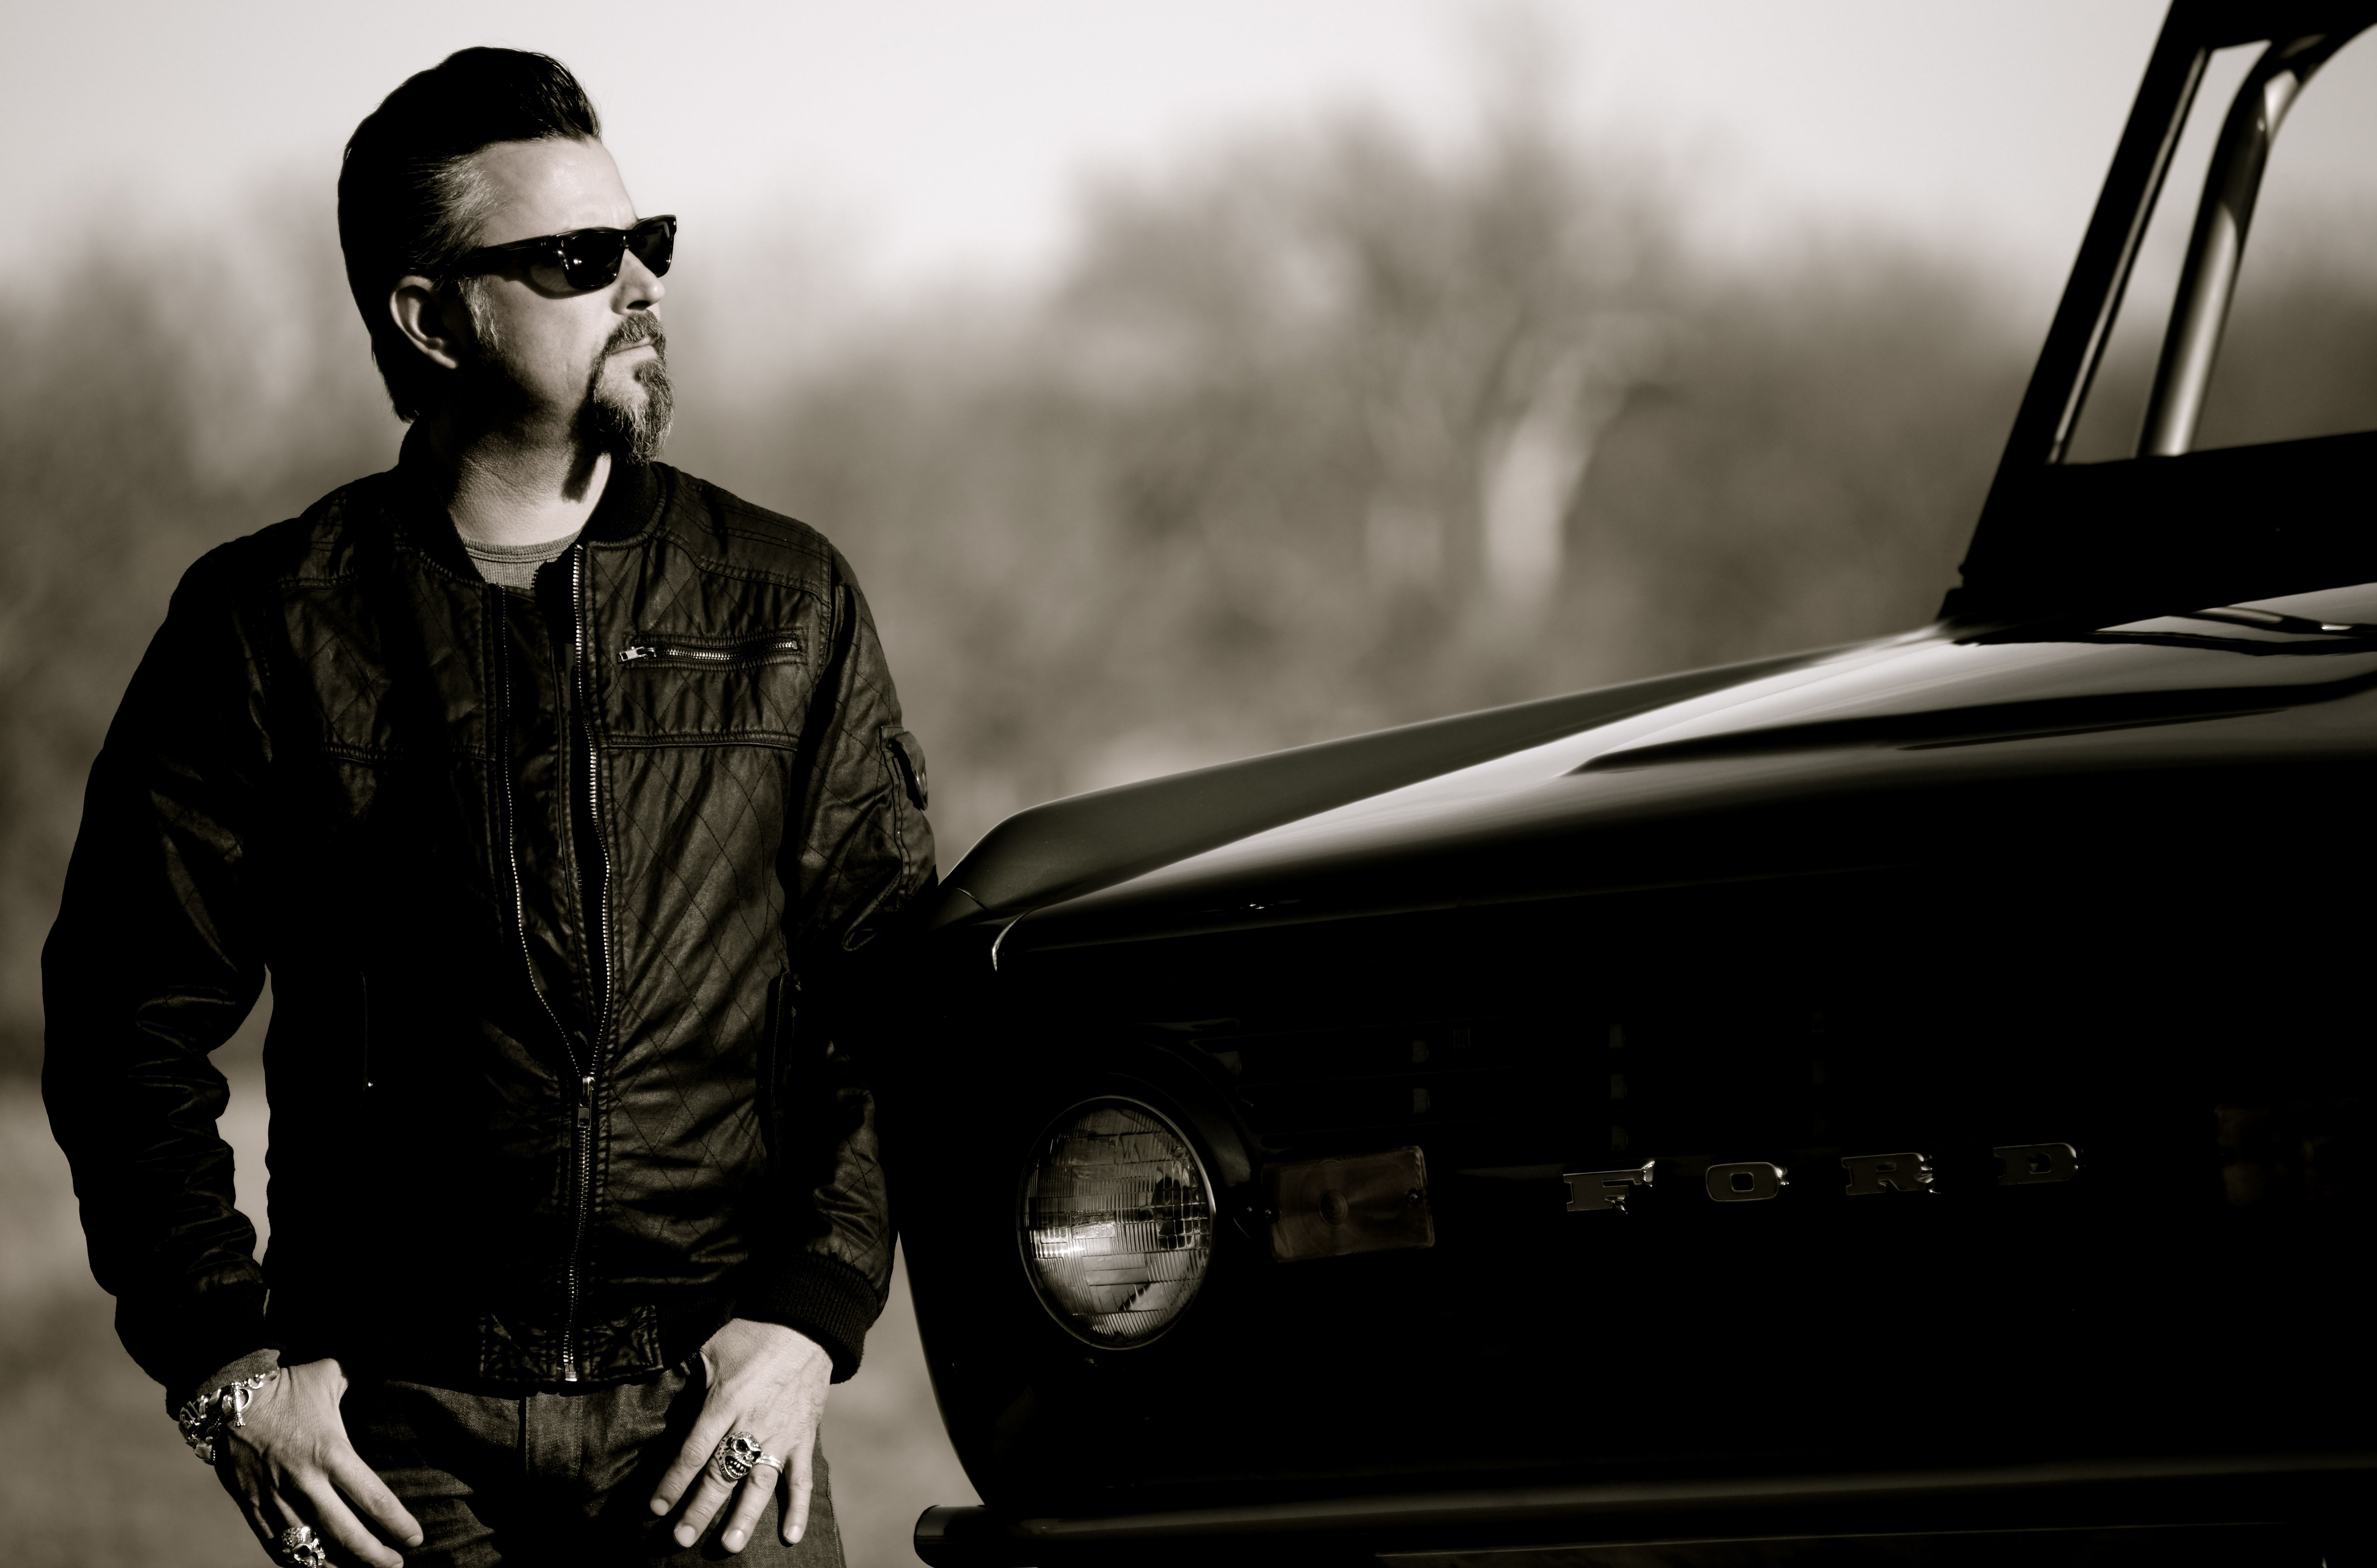 Gas monkey garage gas monkey pinterest garage monkey and gas - Richard Rawlings Of Gas Monkey Garage On Fast